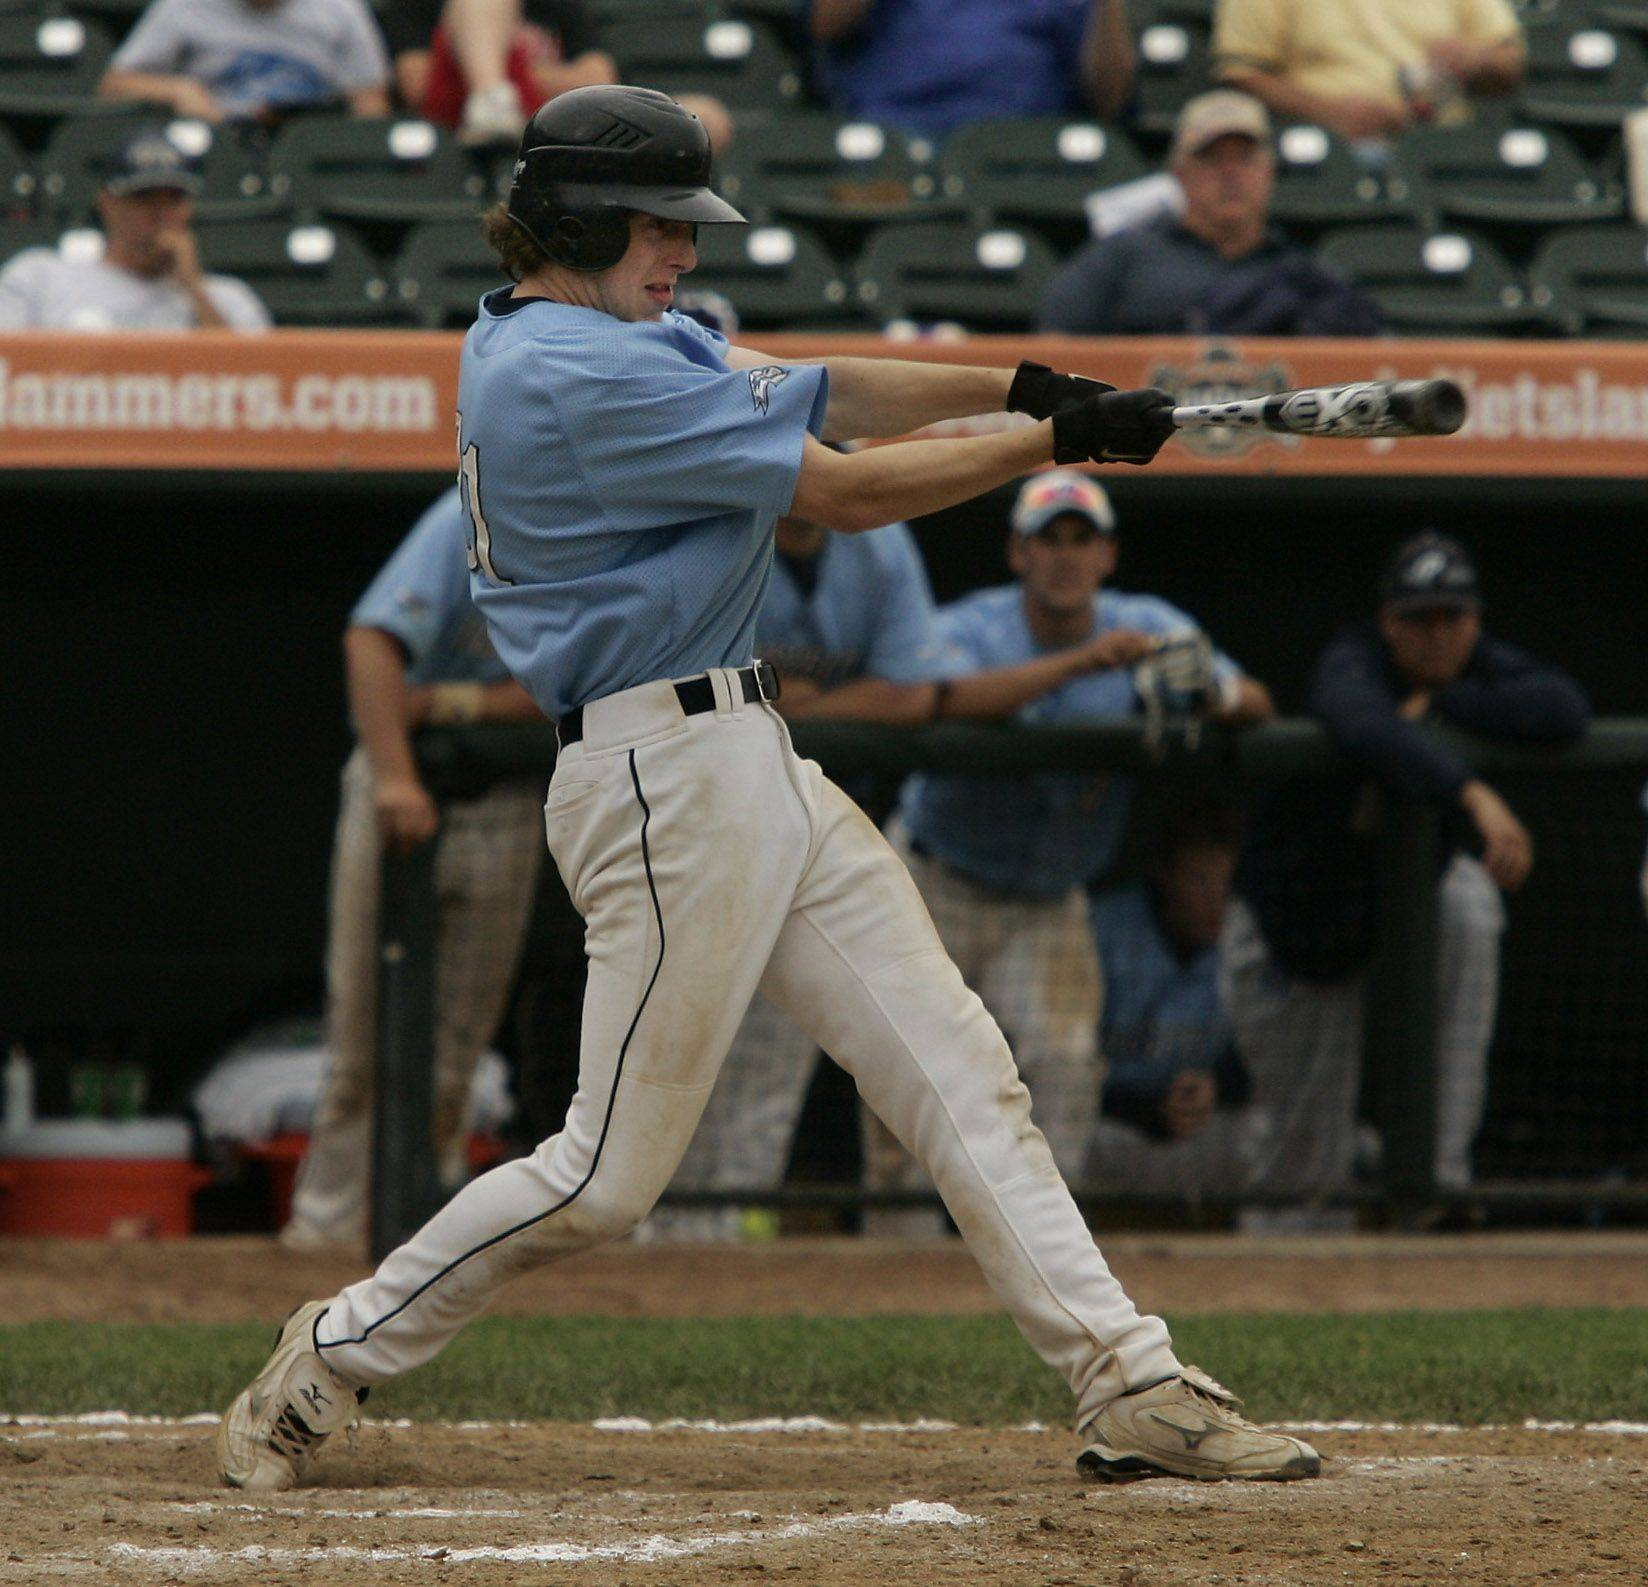 Prospect Brian Bauer gets two hits in the game against Mt. Carmel during the boys high school baseball game Saturday in the Class 4A 3rd place game at Silver Cross Field in Joliet. Prospect defeated Mt. Carmel 2-1 to win third place in the state.